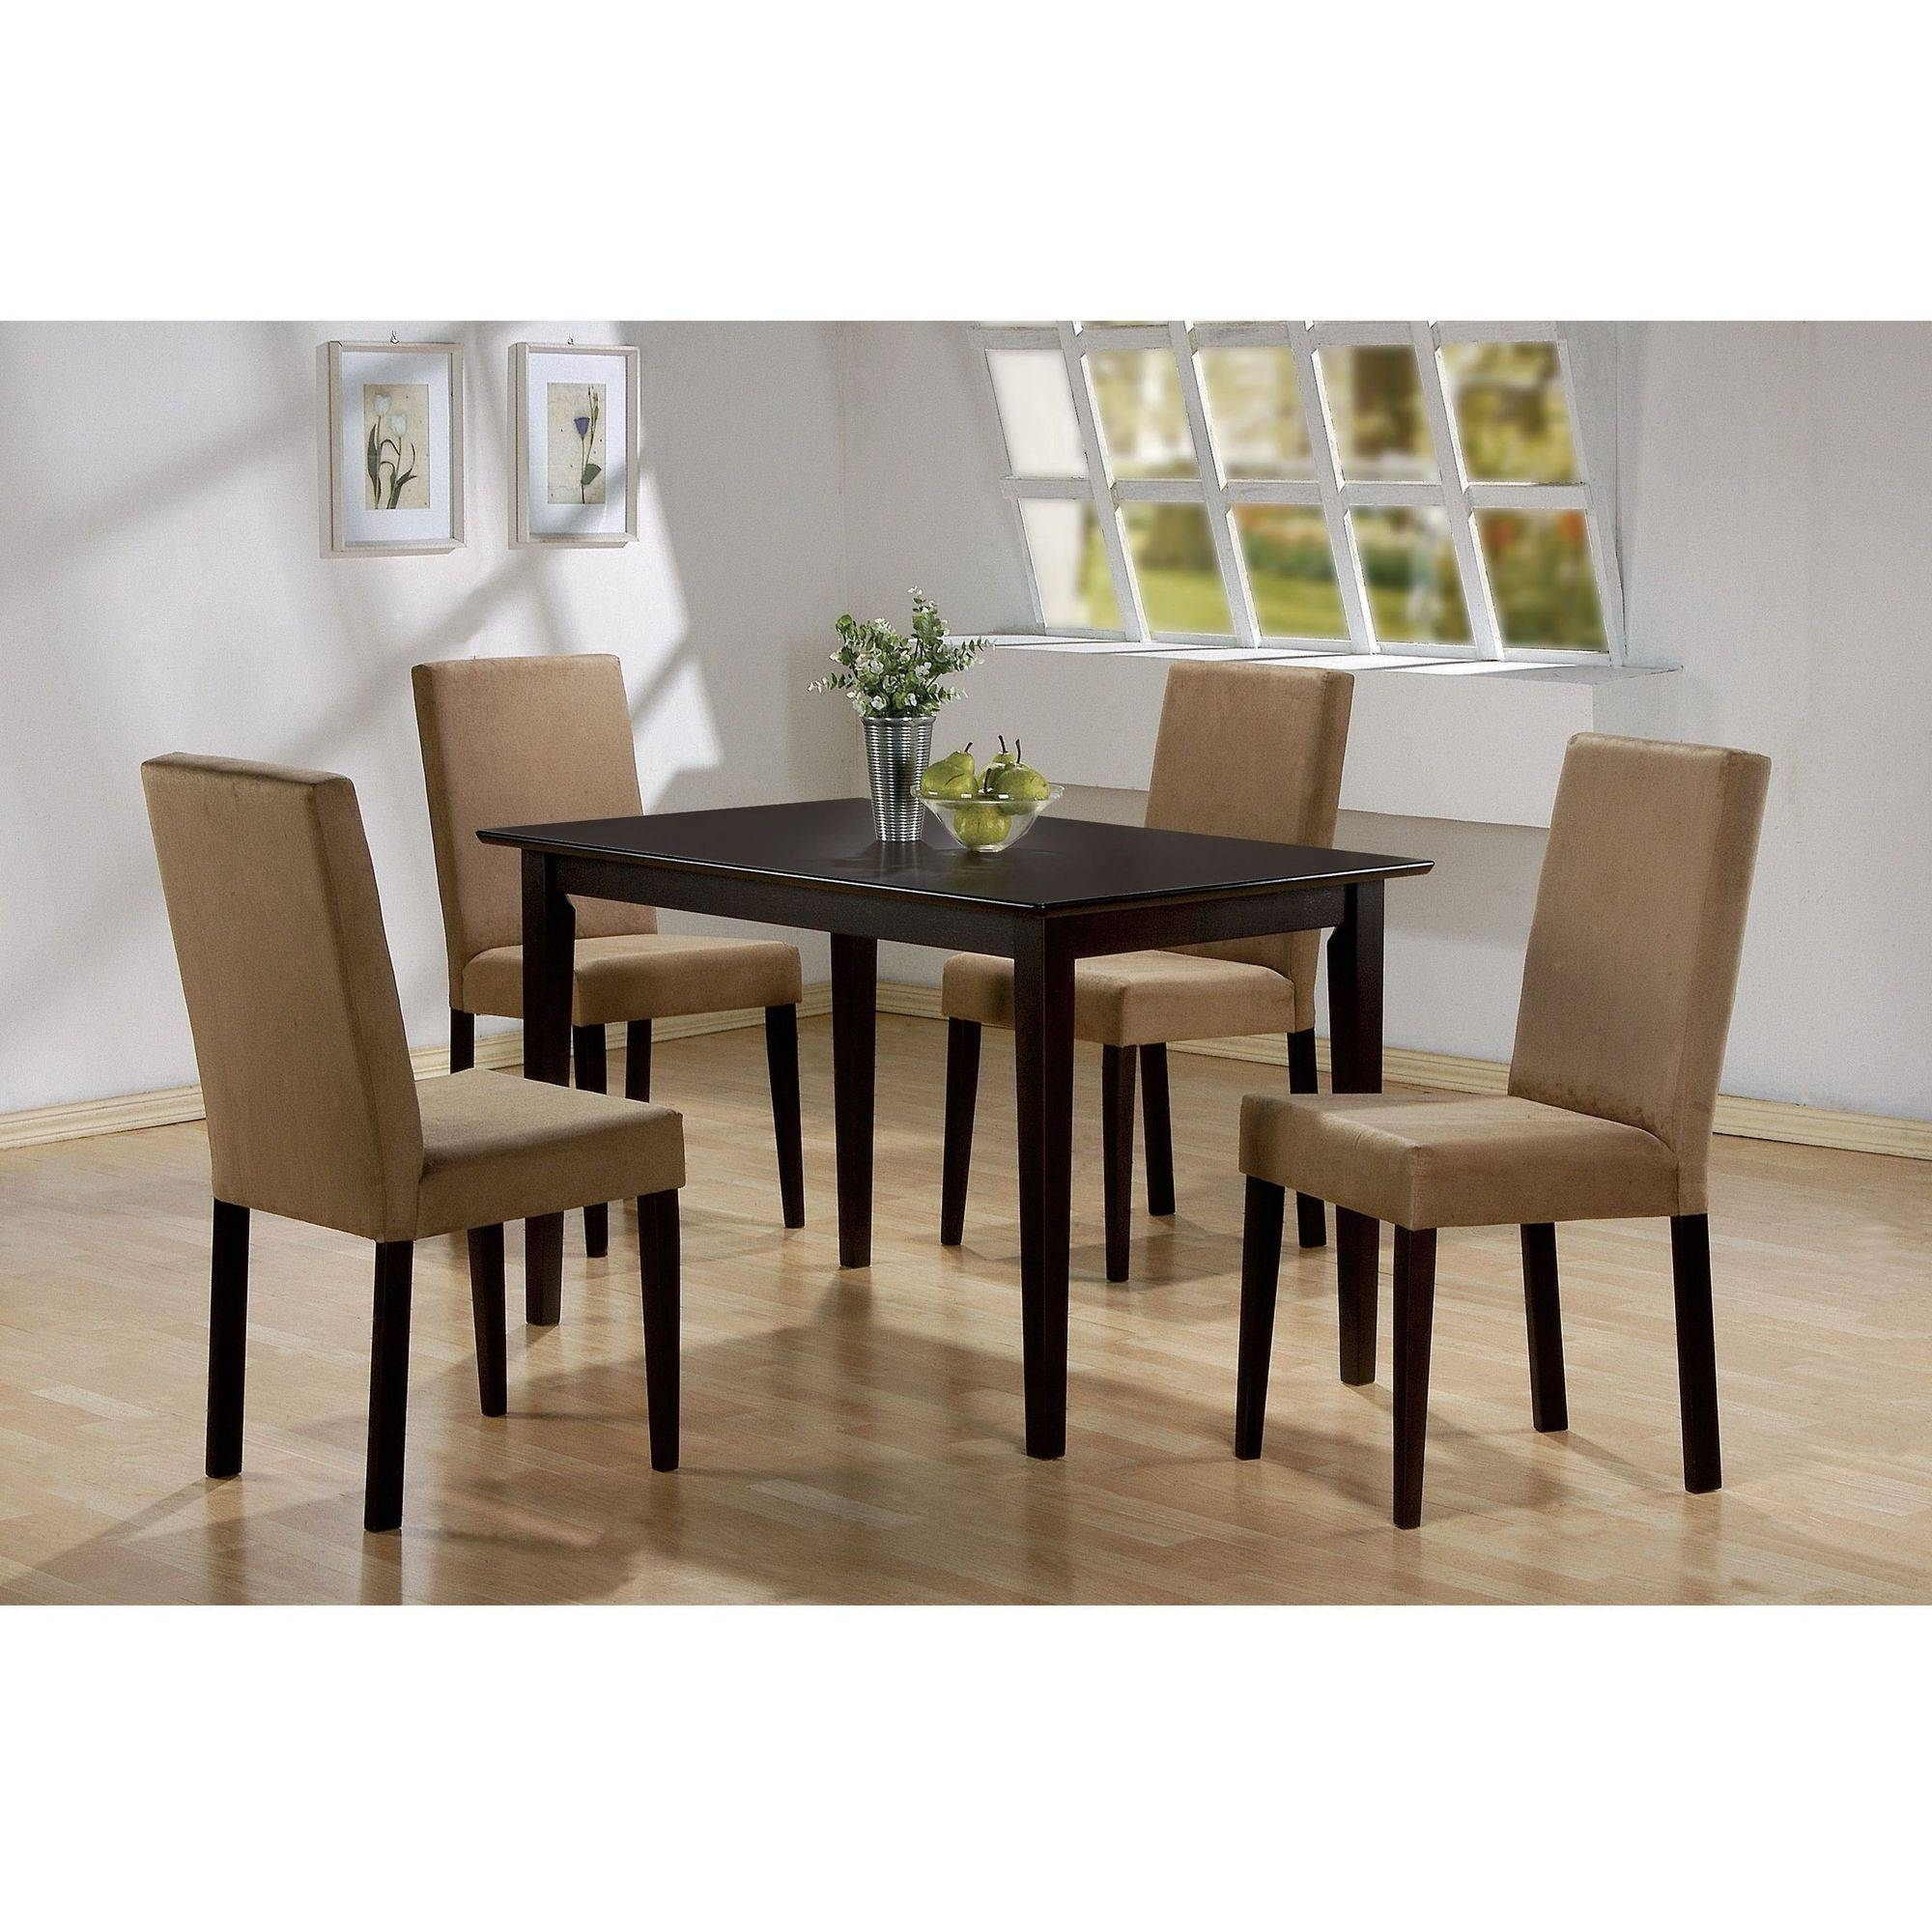 Fashionable Cheap Dining Tables And Chairs In Coaster Company Clayton Dining Table, Chairs Sold Separately (View 19 of 25)